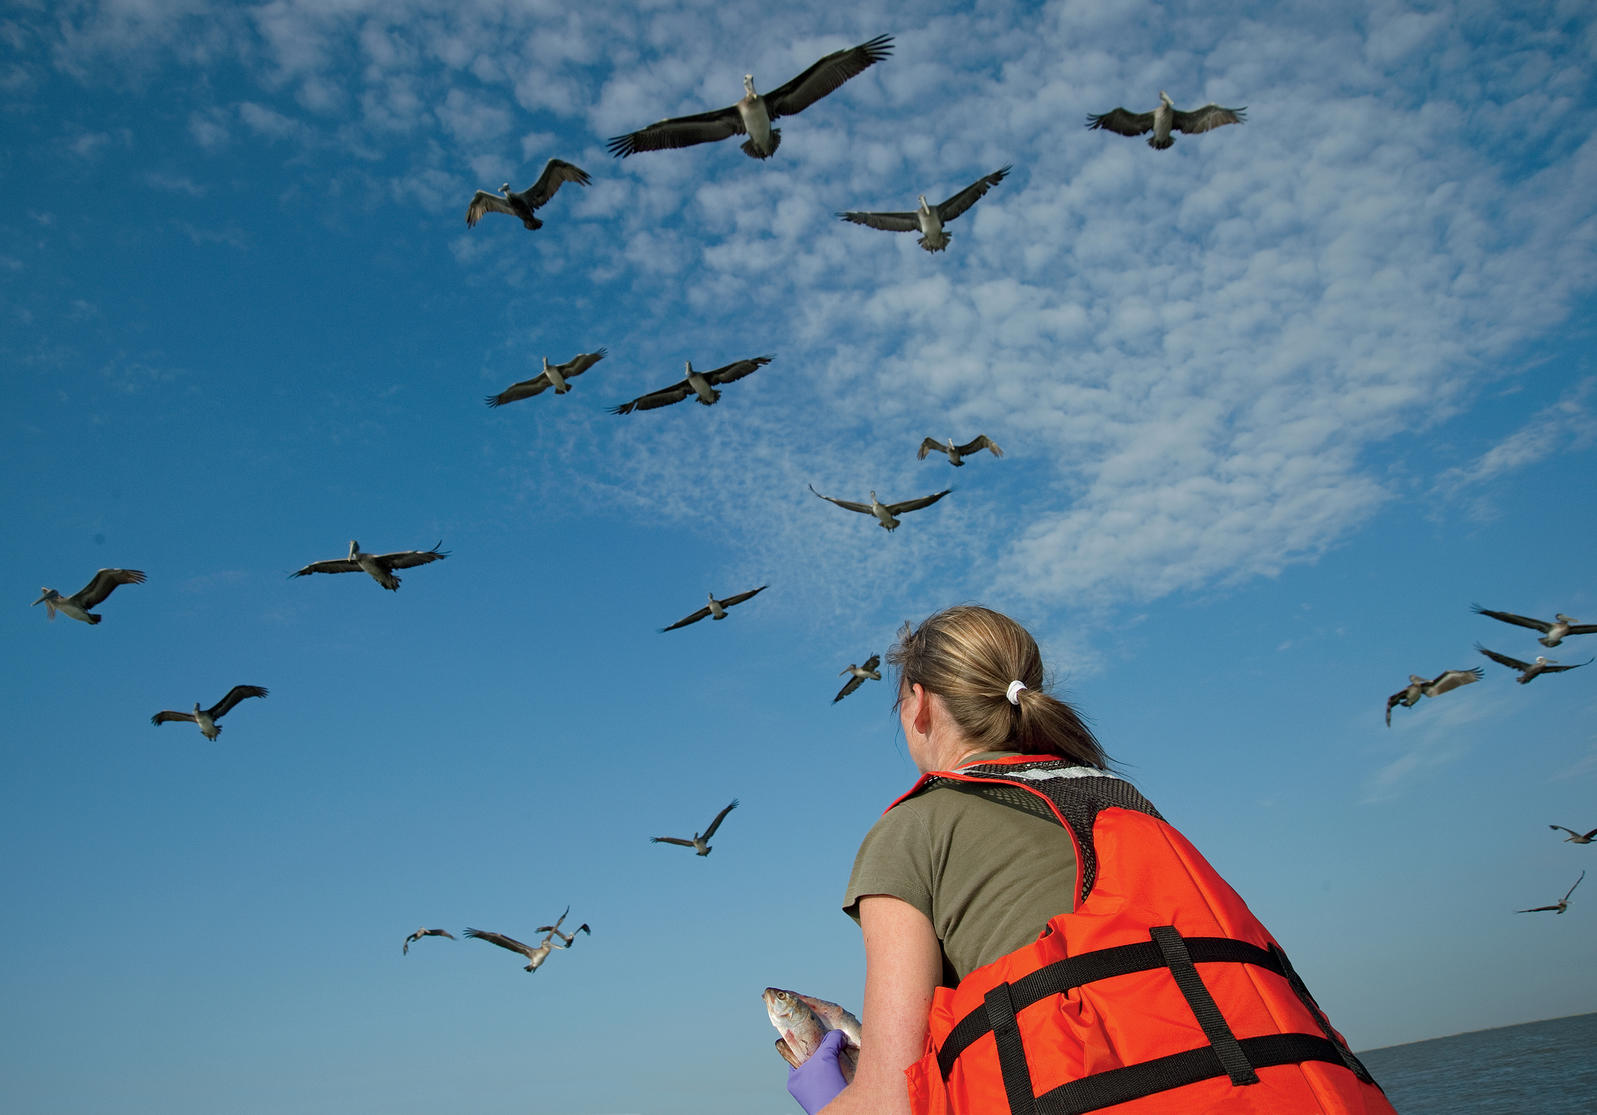 Volunteer Gena Estaville feeds hundreds of pelicans on Rabbit Island, off western Louisiana, and helps biologists from the Louisiana Department of Wildlife and Fisheries count released birds with yellow, red, pink, and green bands. Kim Hubbard